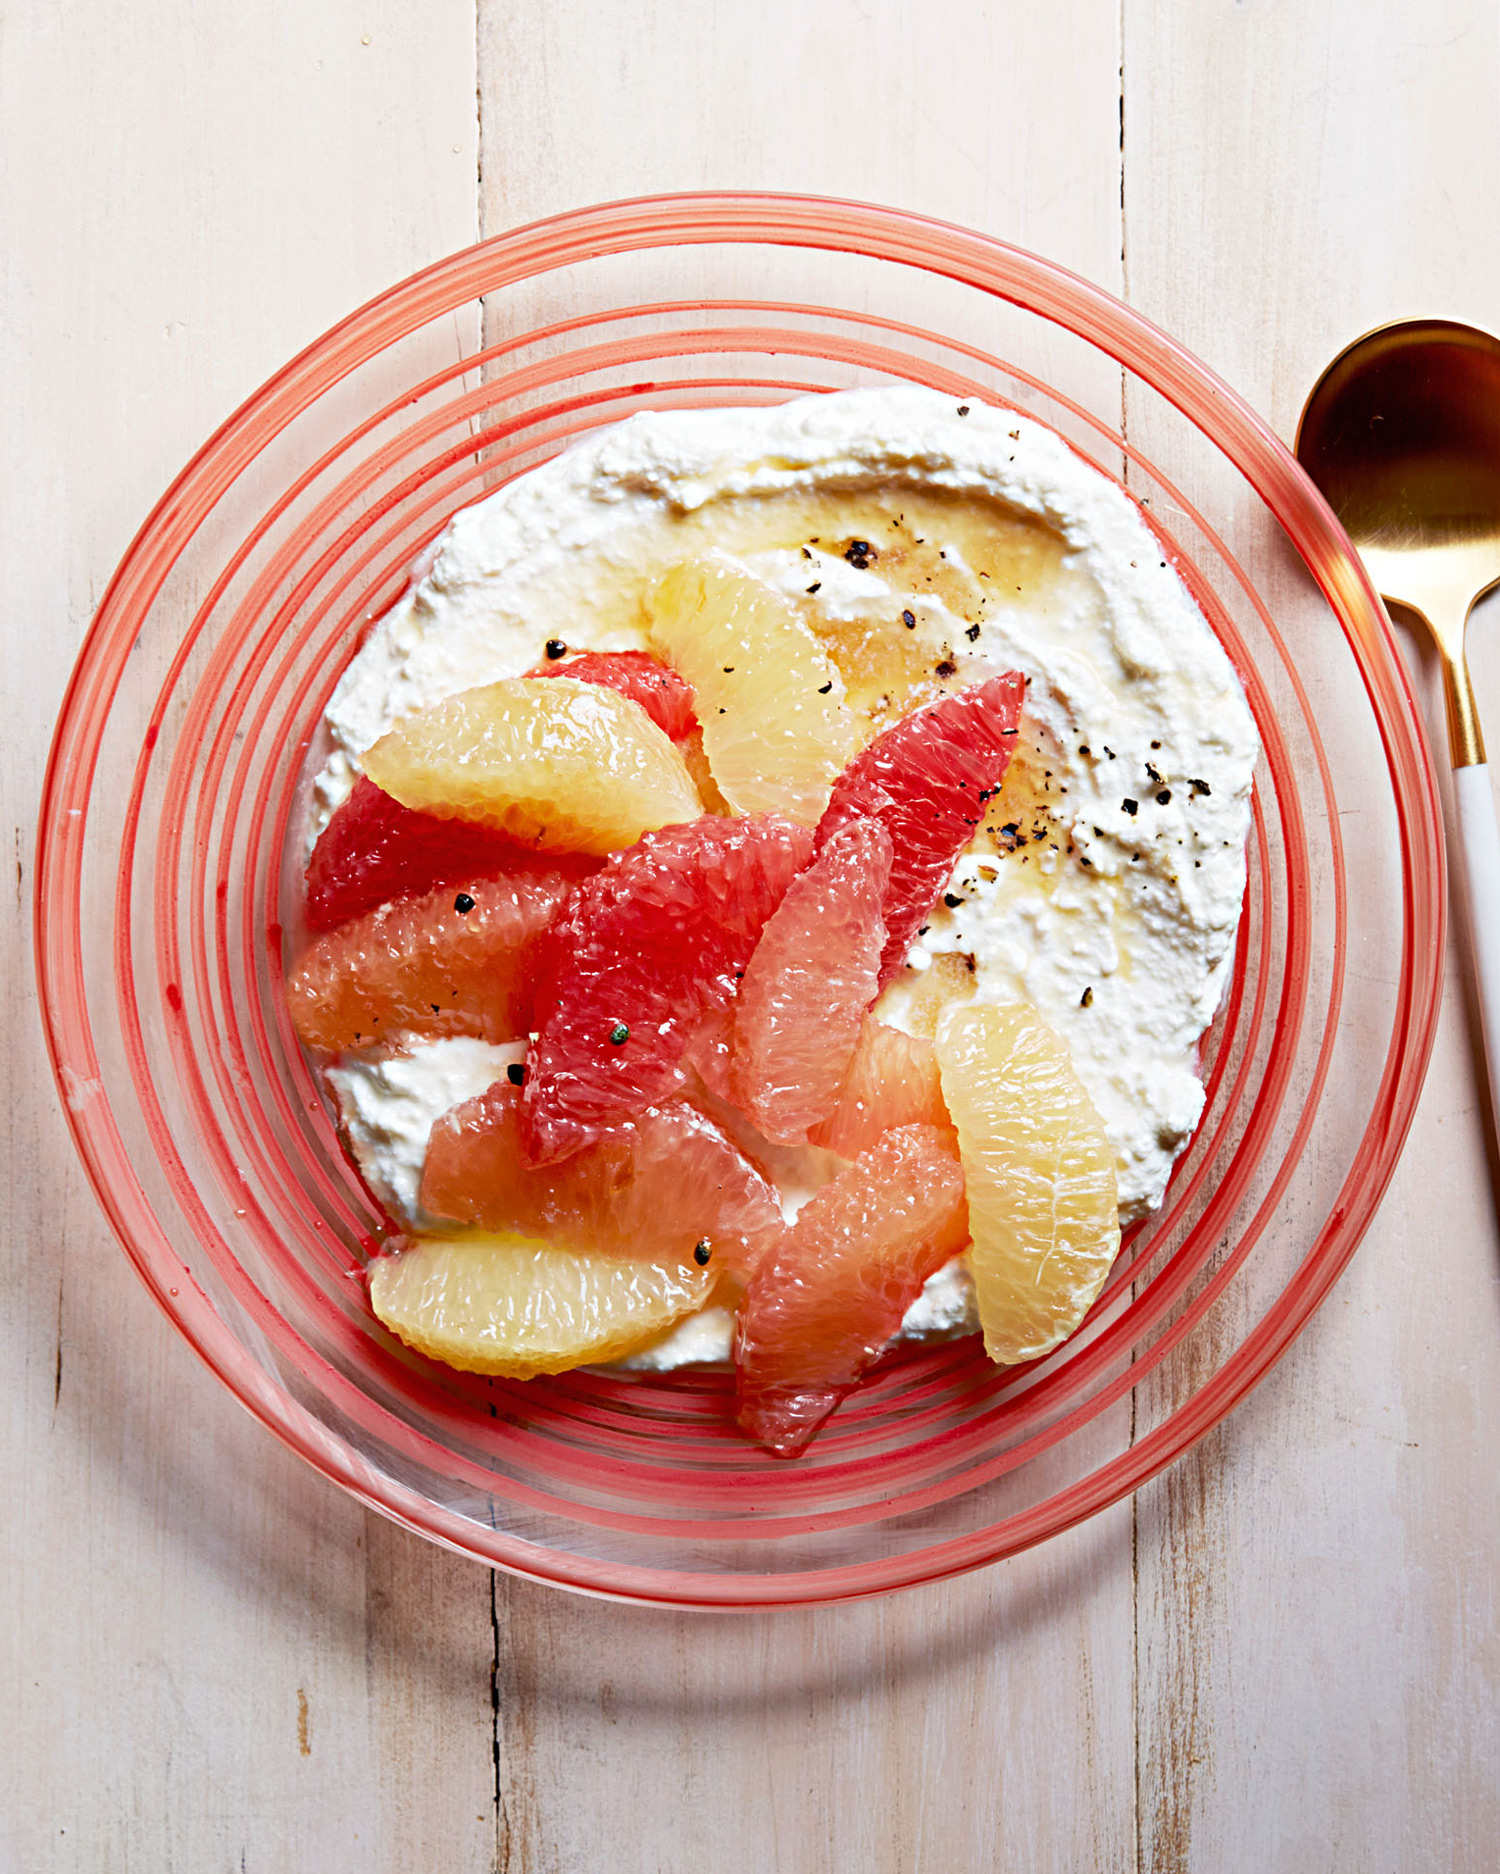 grapefruit-and-ricotta-with-cardamom-honey-102817864.jpg